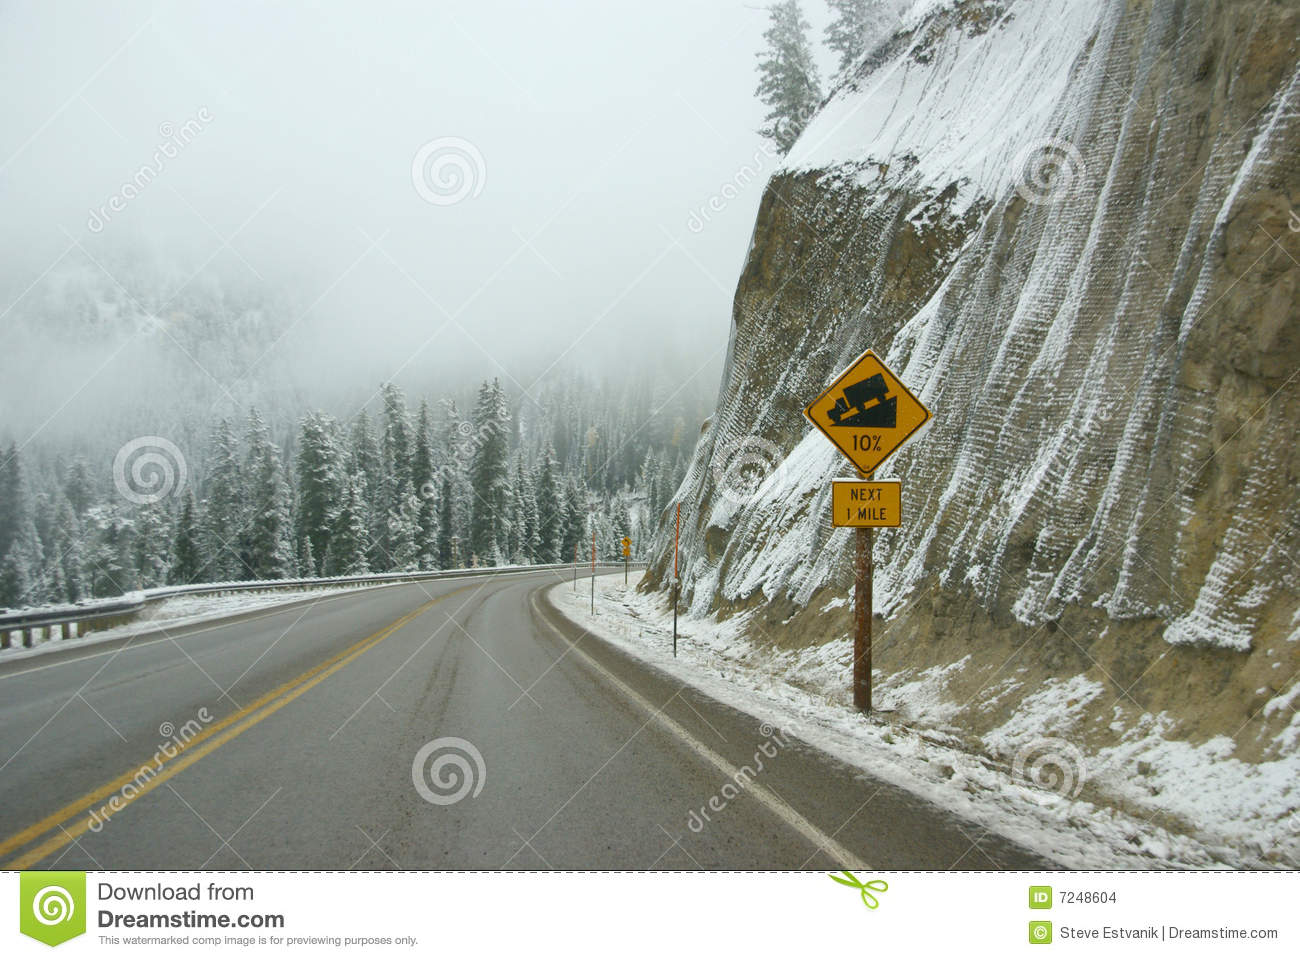 Traffic signs on icy mountain road